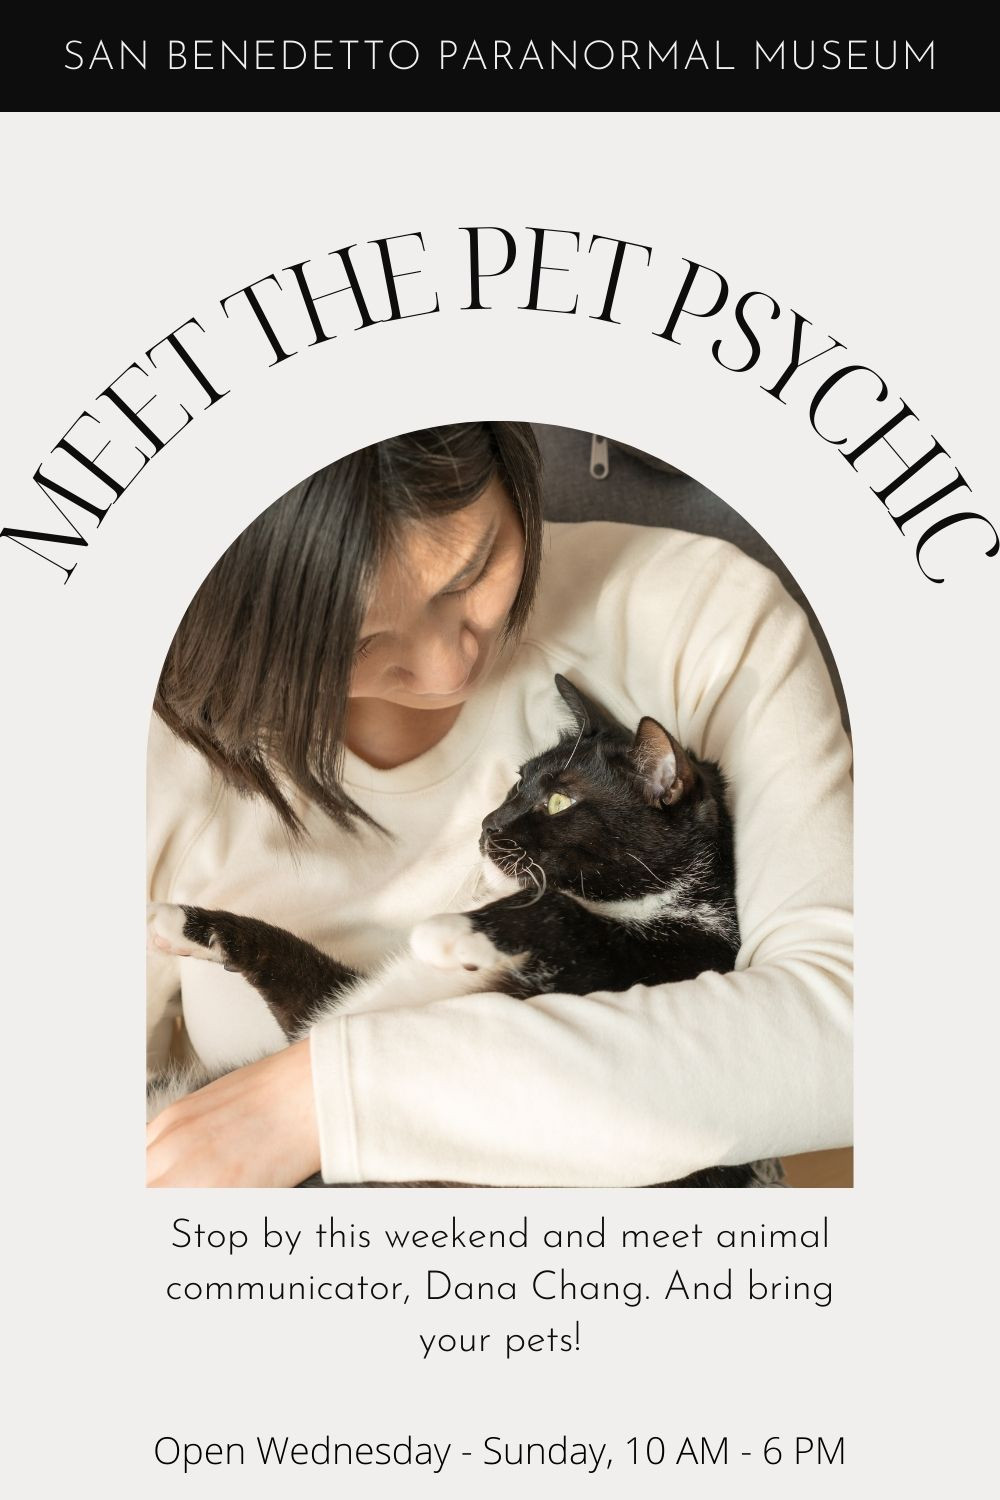 Image of woman with cat. Stop by the San Benedetto Paranormal Museum and meet animal communicator Dana Chang!